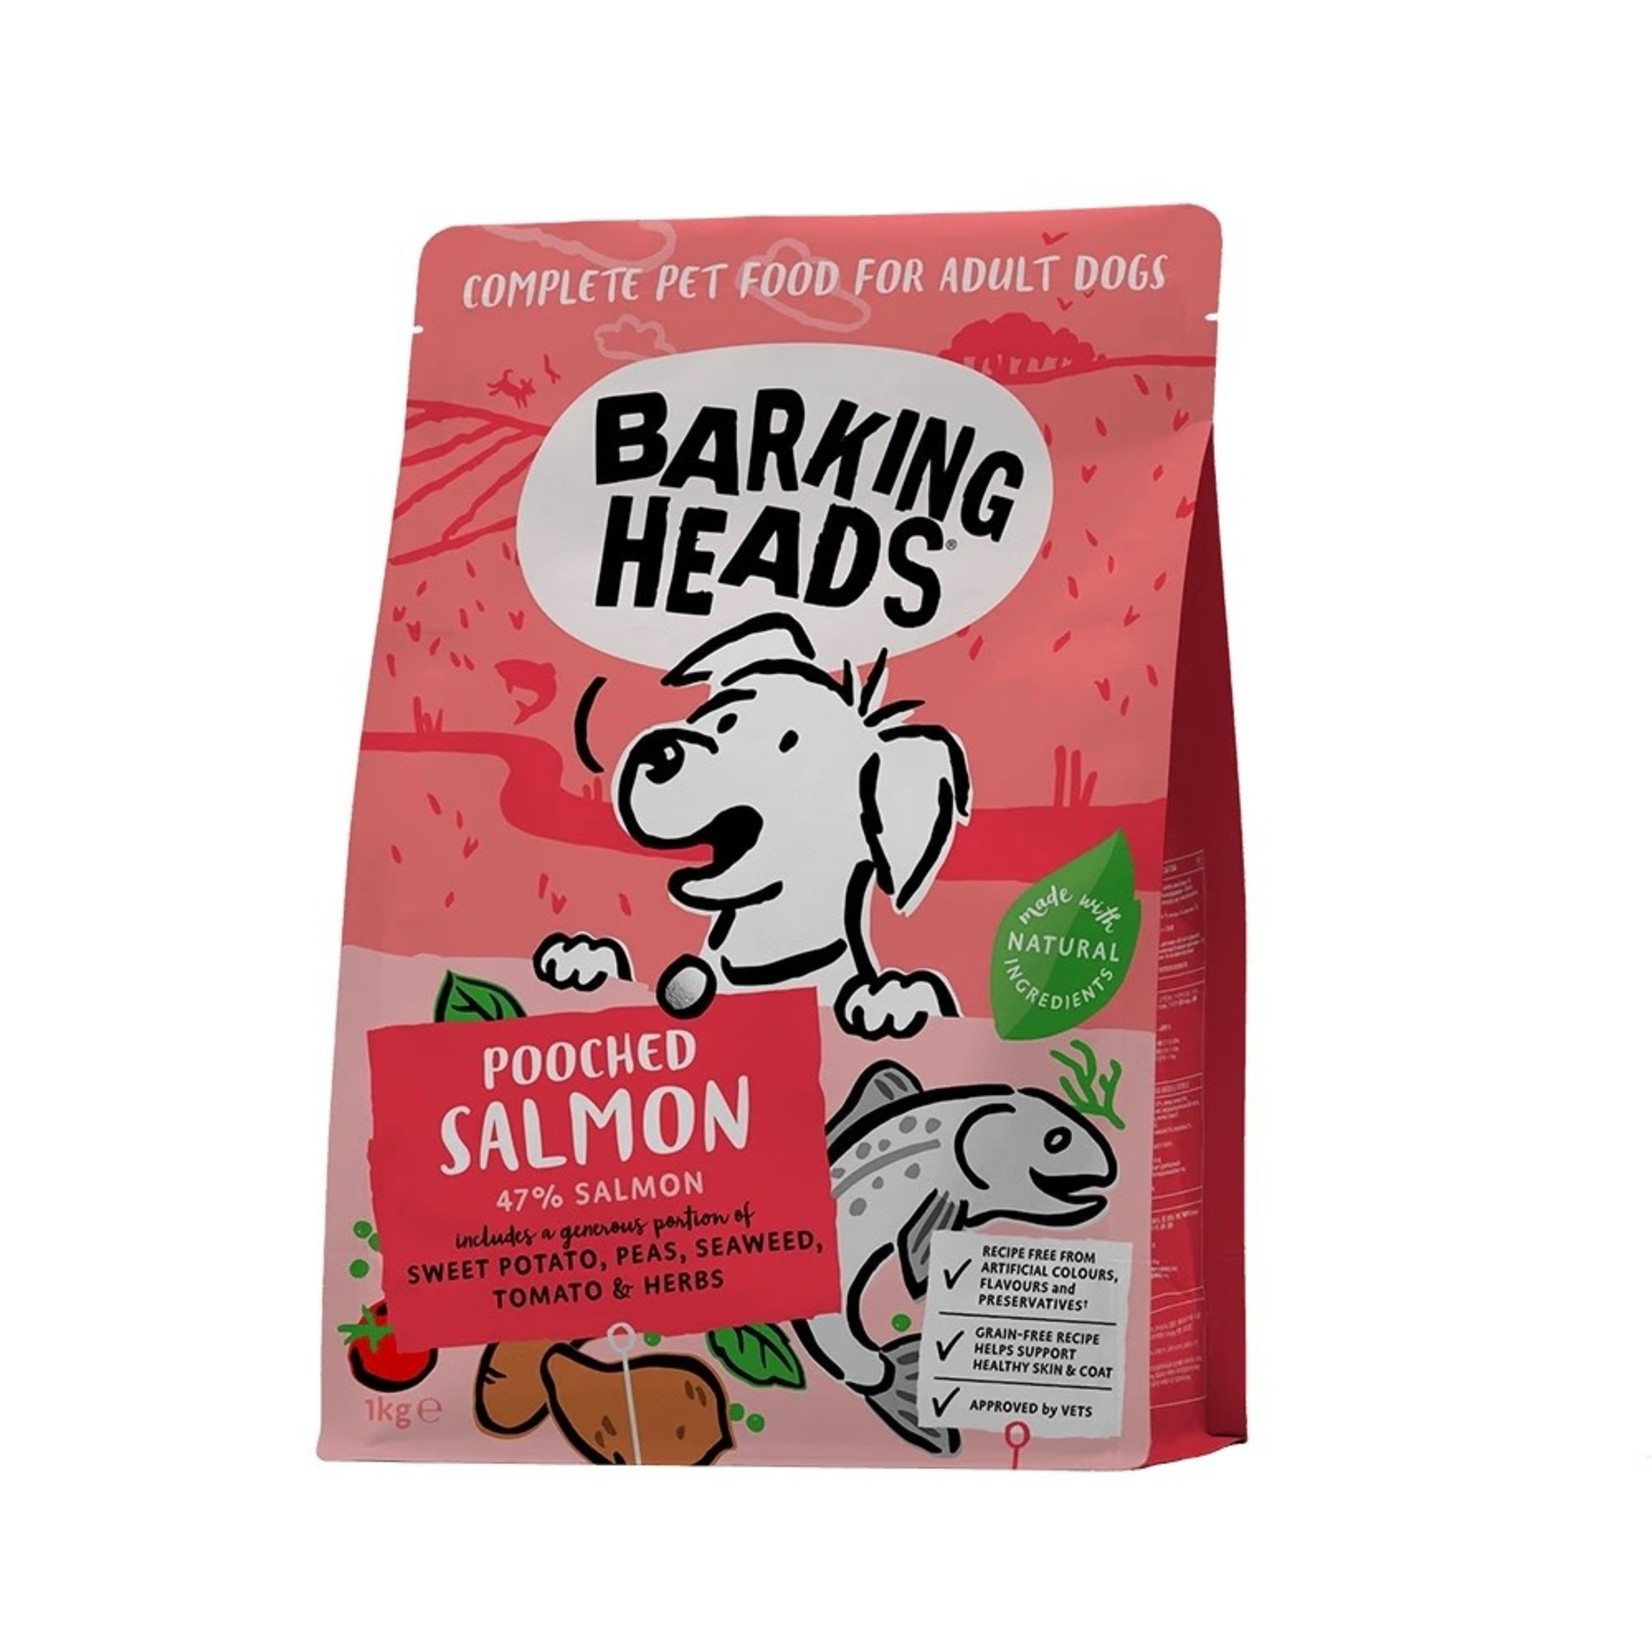 Barking Heads Pooched Salmon Adult Dog Dry Food, Salmon